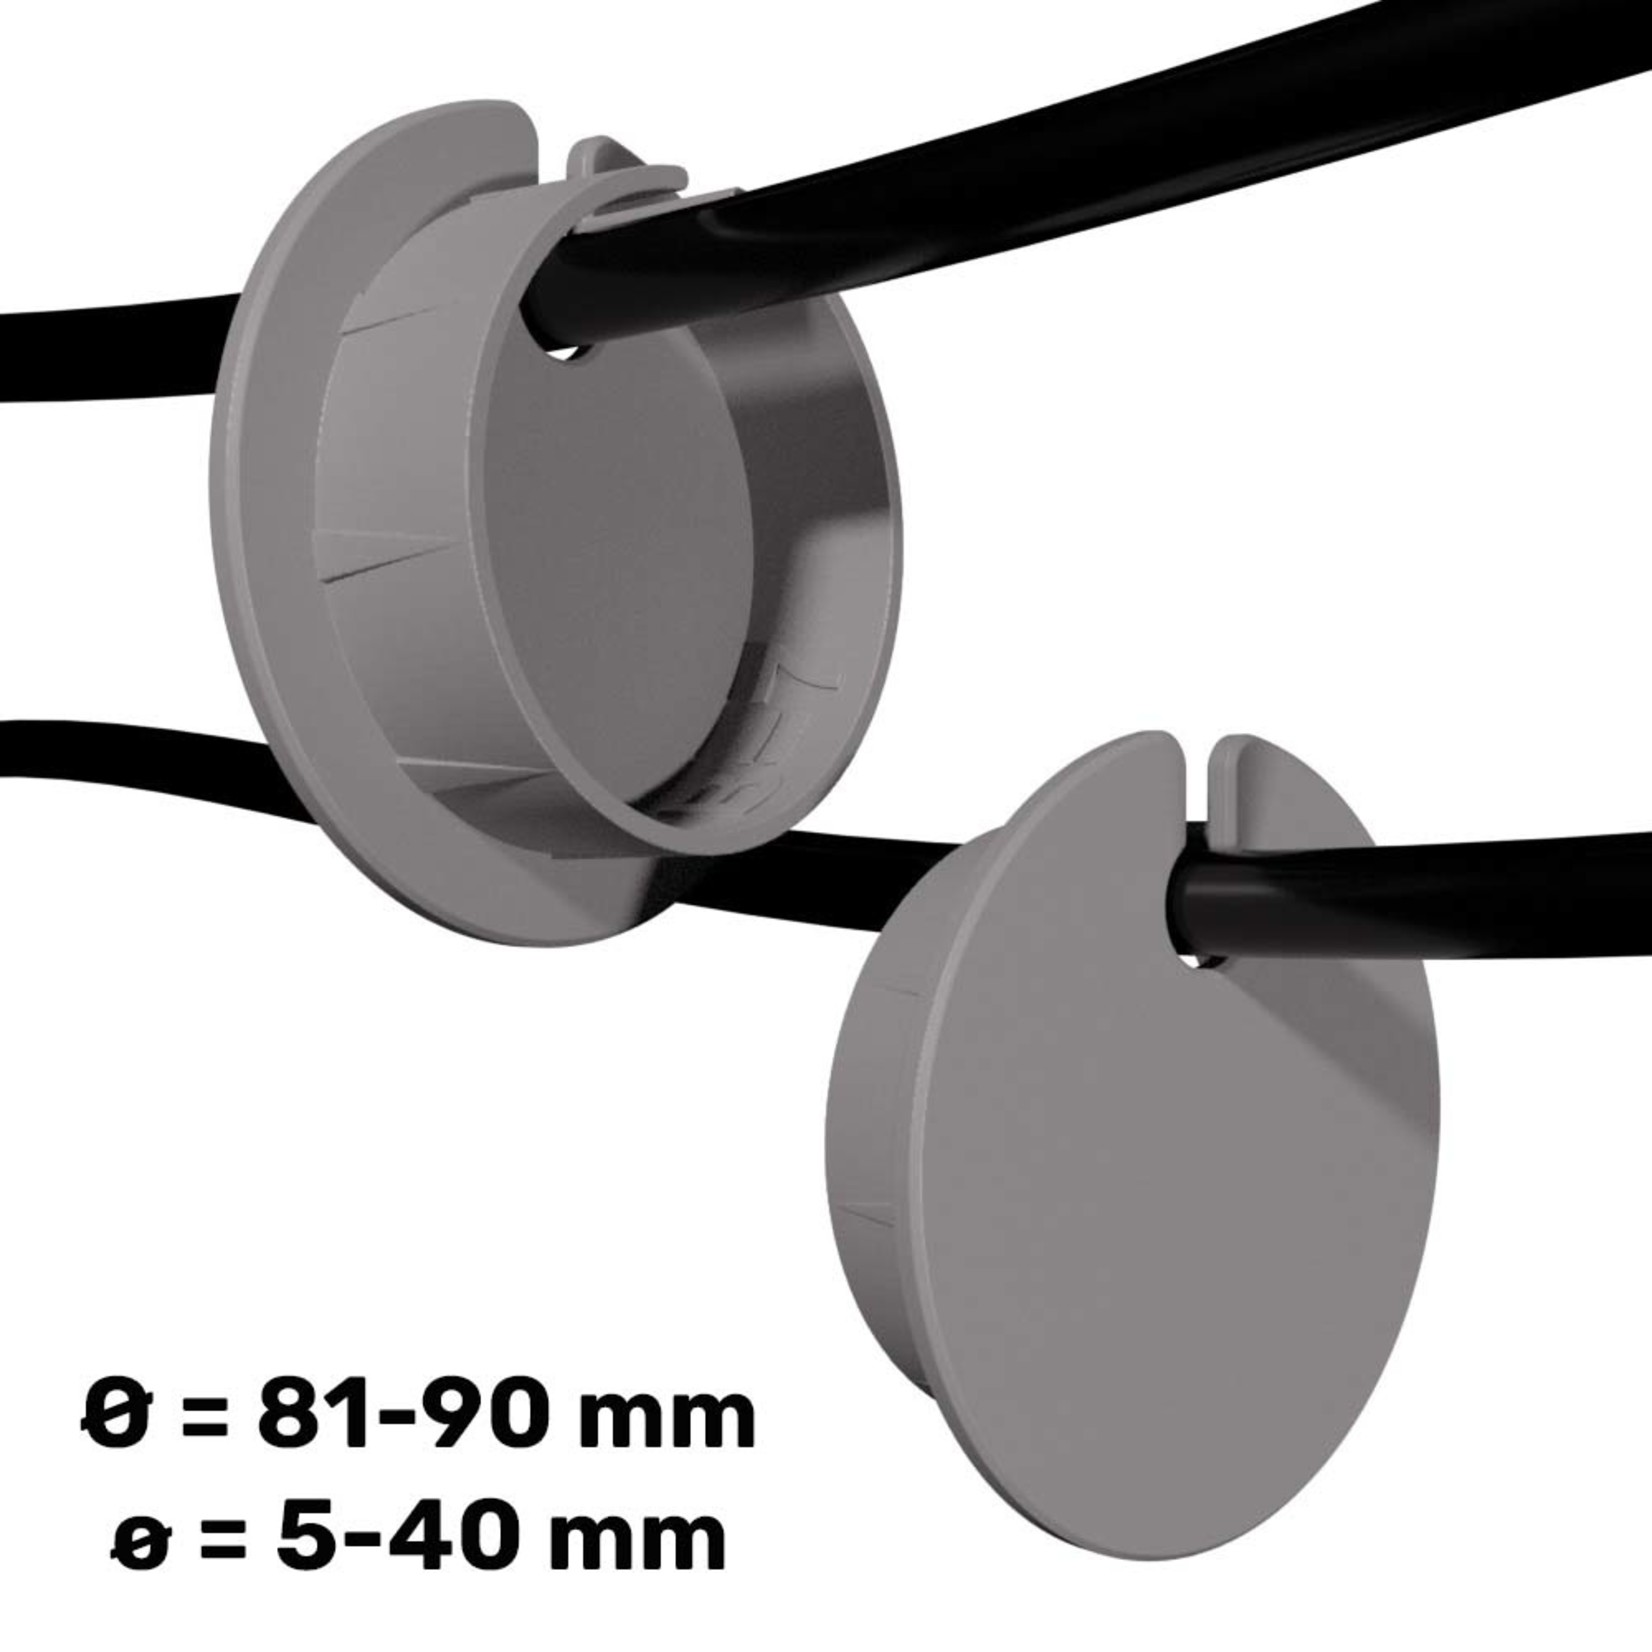 Umake Side cableguide Ø 81-90 mm   Customizable dimensions and colors